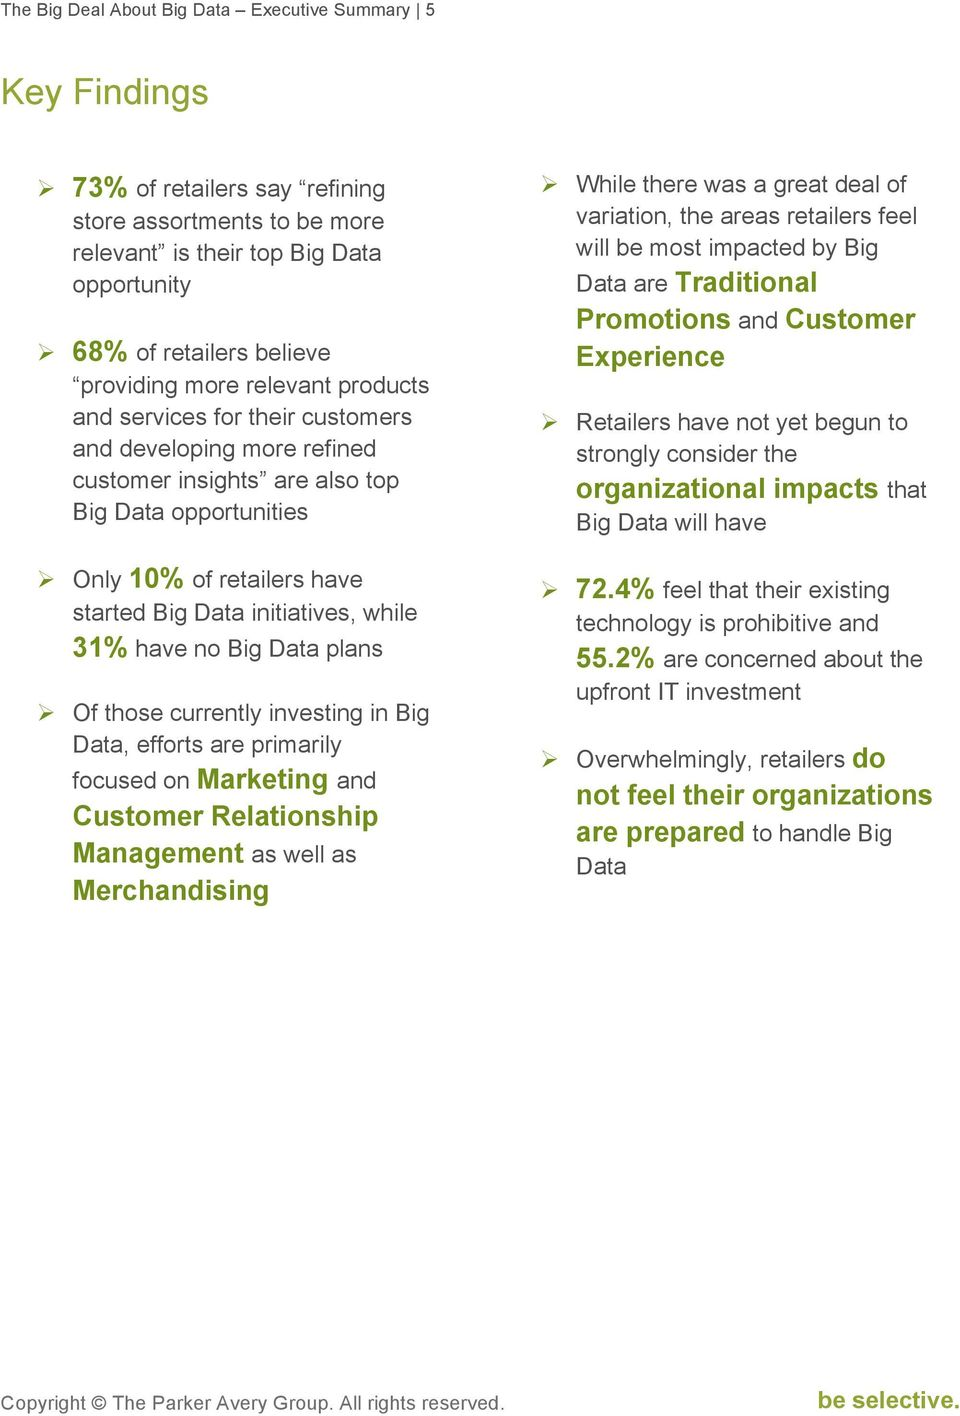 Only 10% of retailers have started Big Data initiatives, while 31% have no Big Data plans!